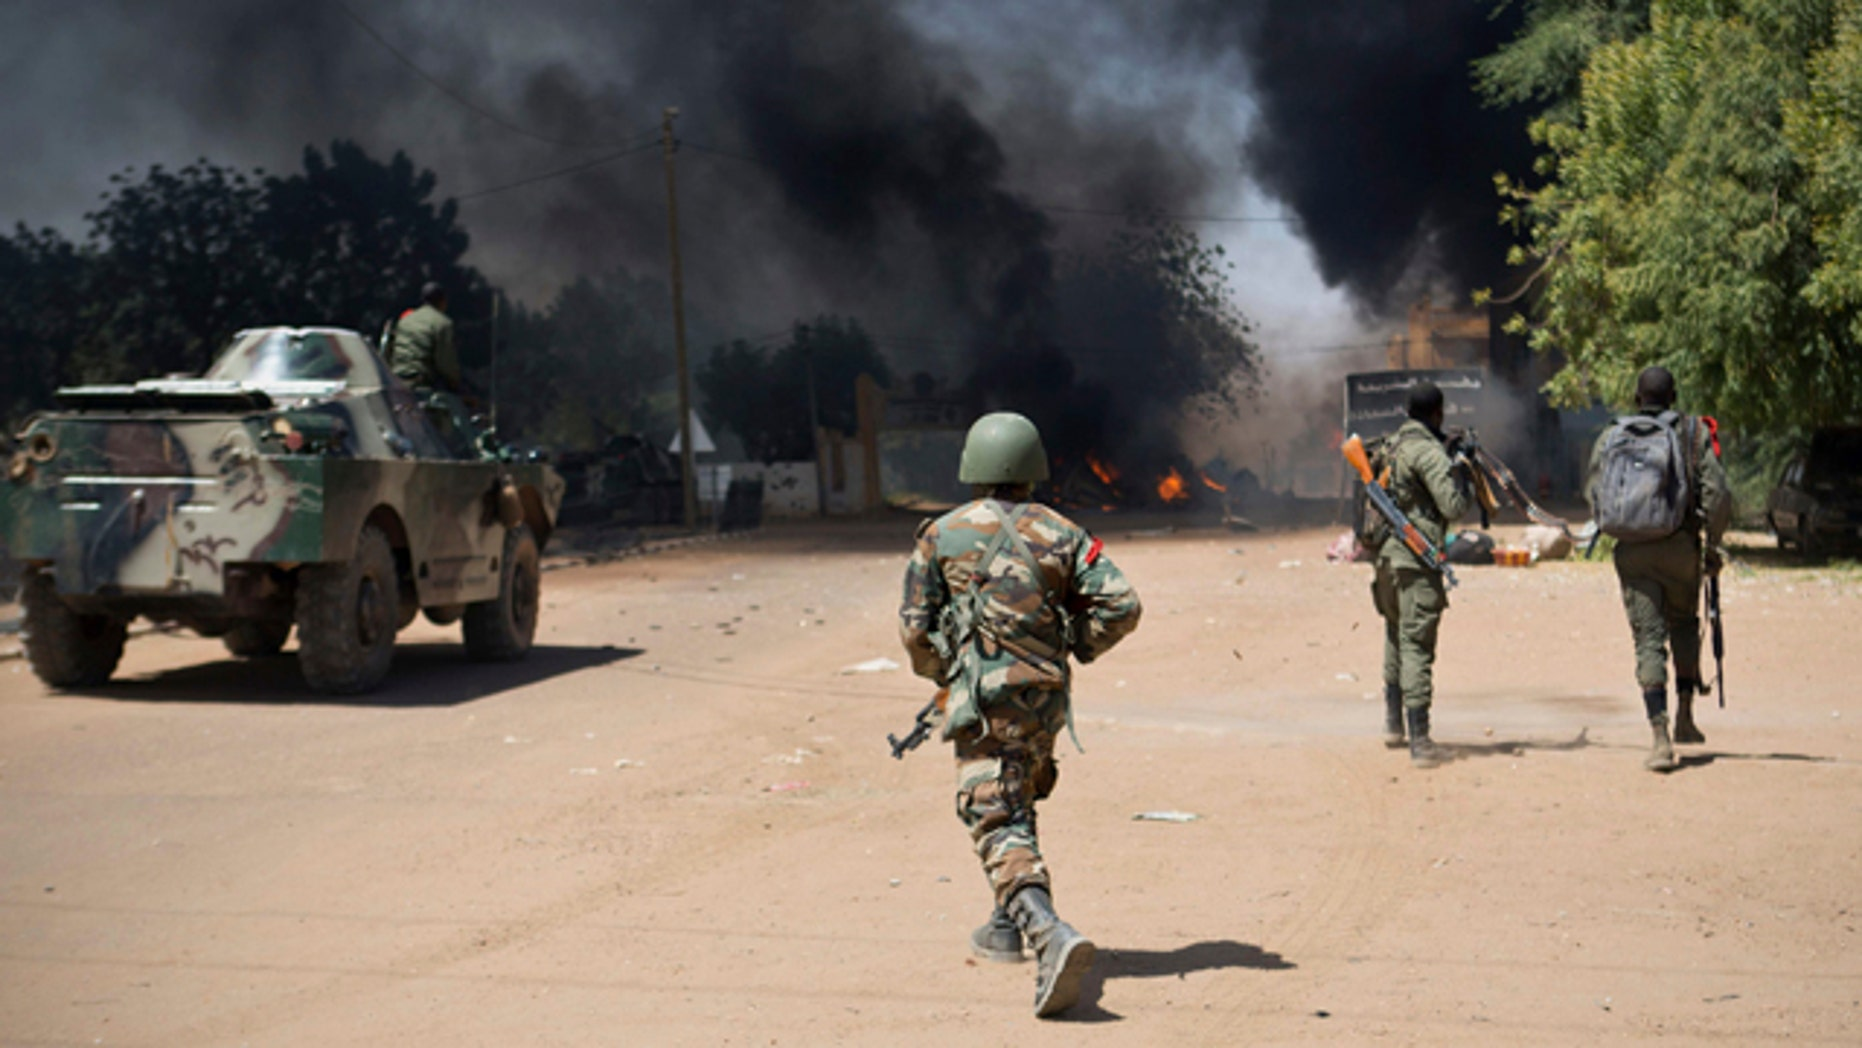 Feb. 21, 2013: Malian soldiers, working with French forces, battling radical Islamic rebels in Gao, Mali.